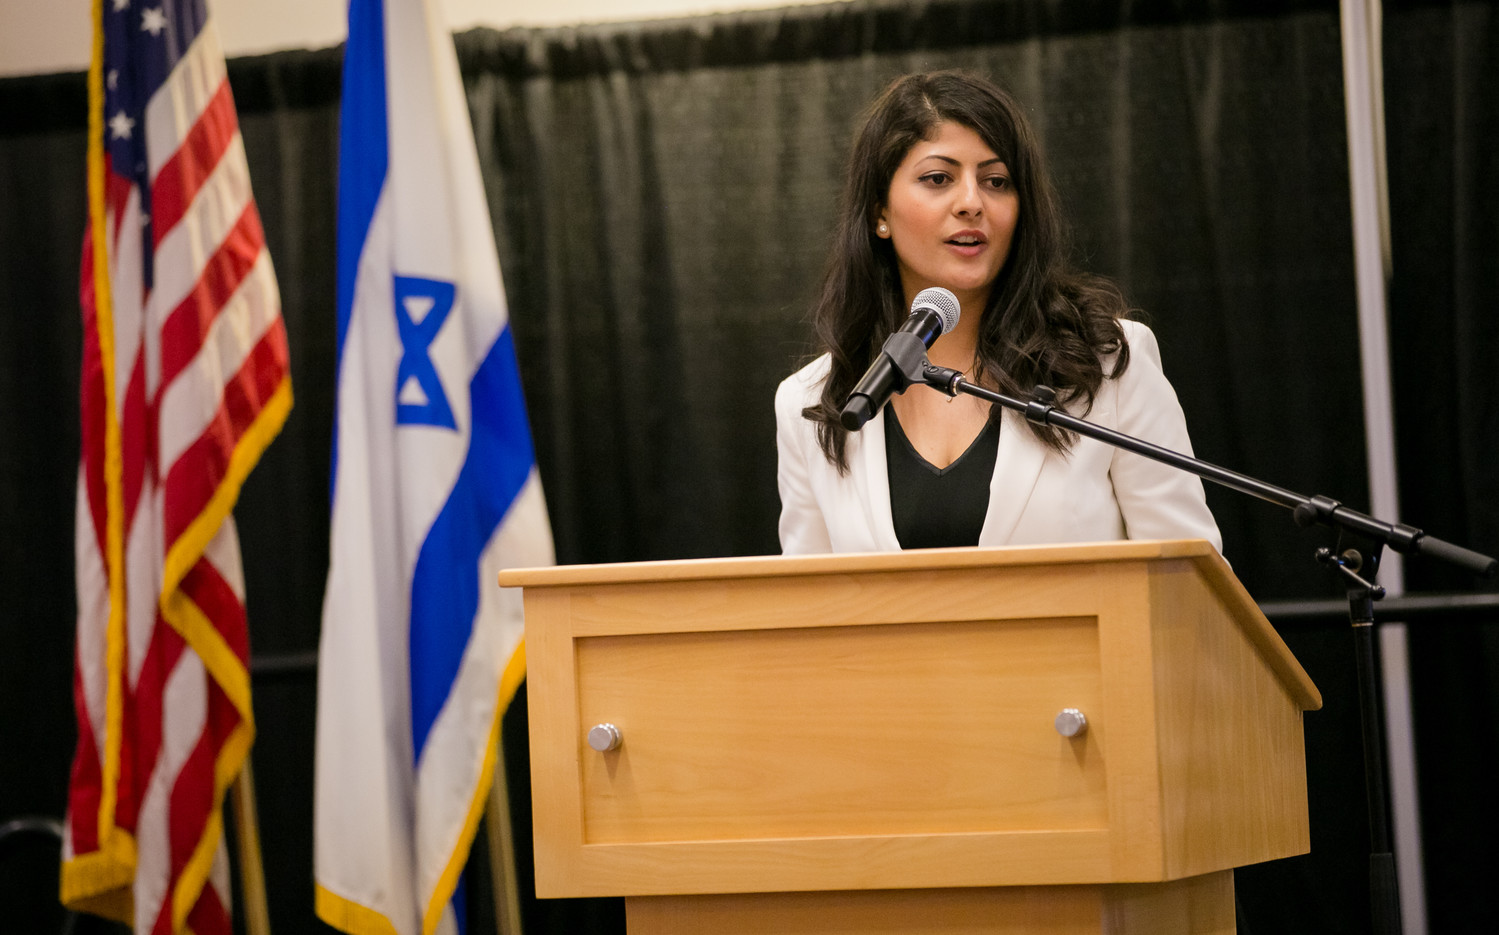 Lian Najamin at an Israeli Independence Day student gala at Boston University on April 6.